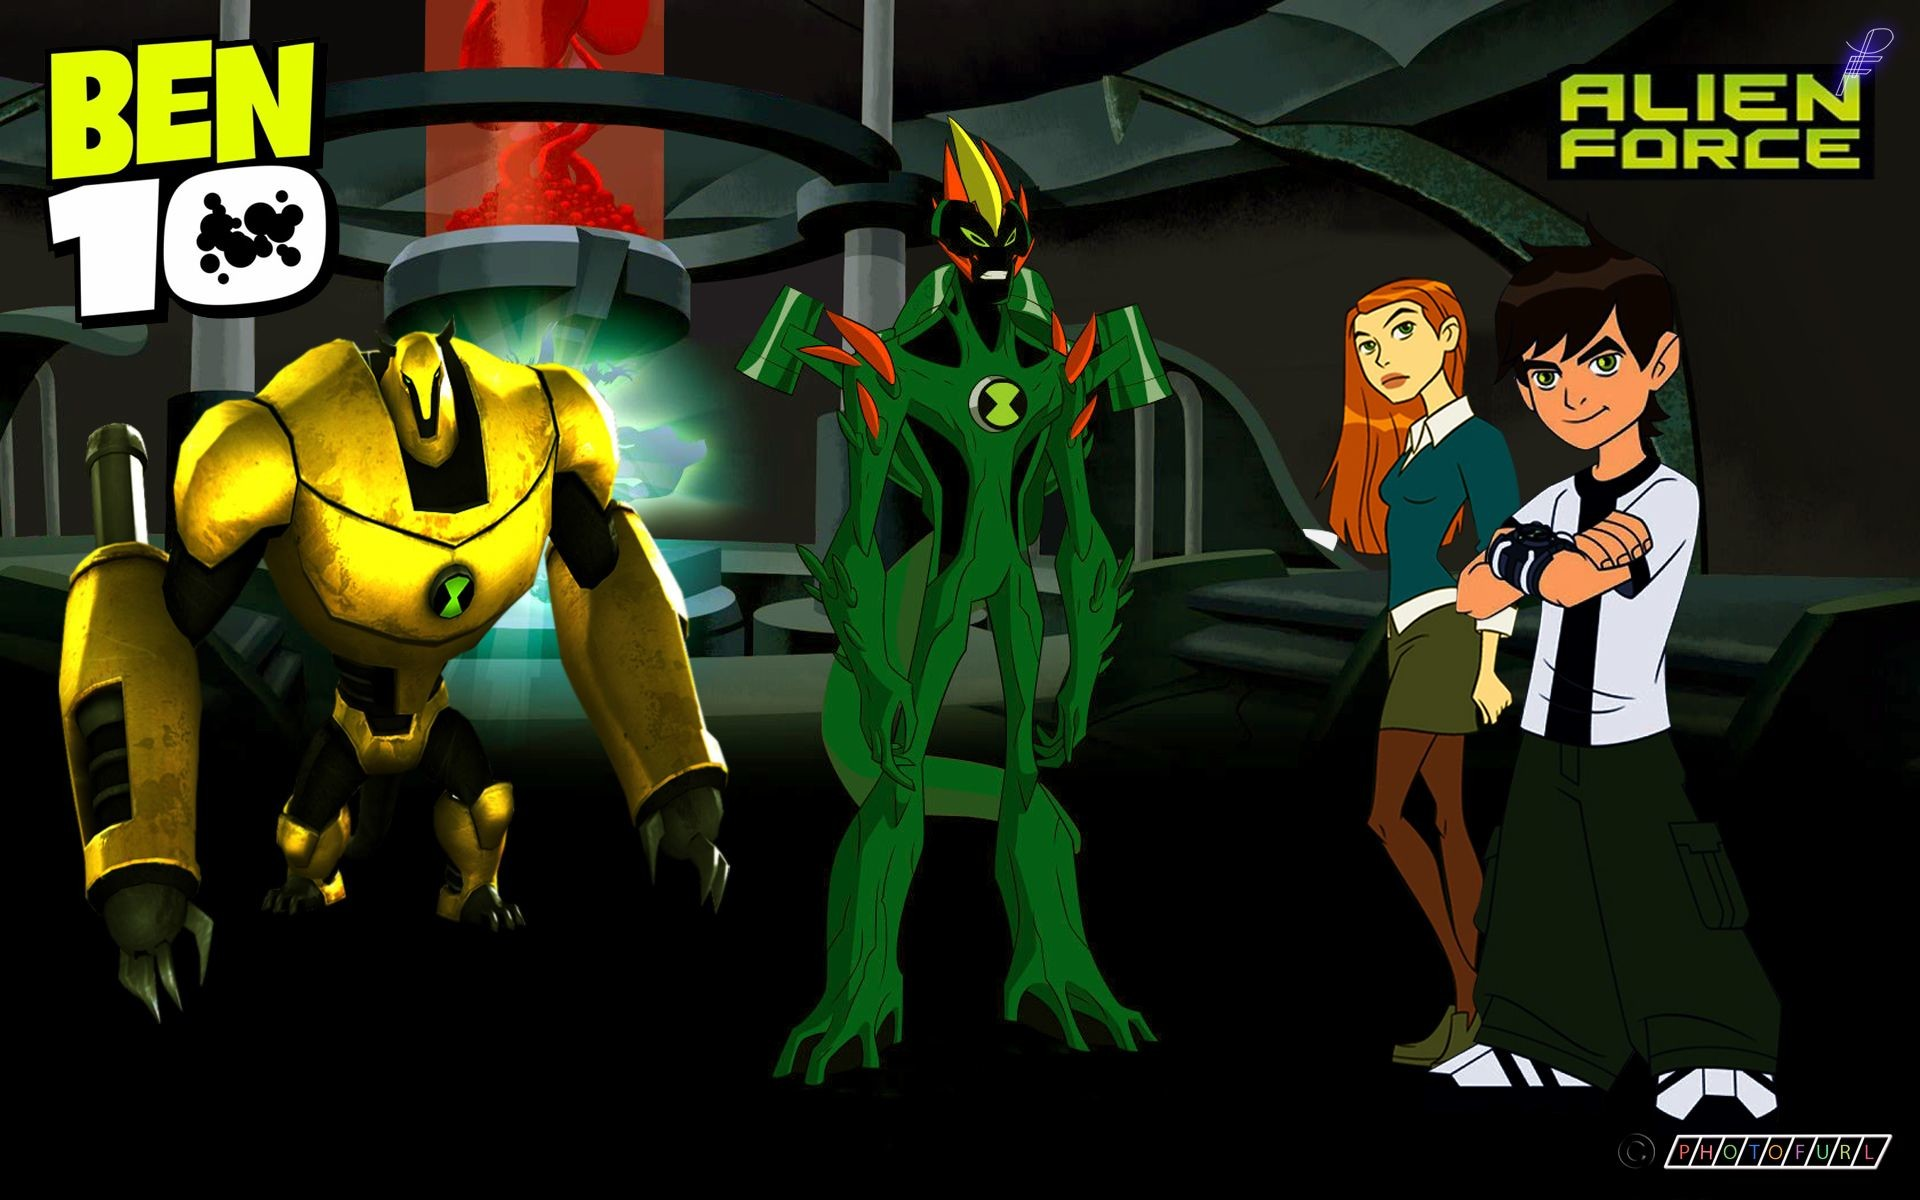 download game of ben 10 ultimate alien for pc